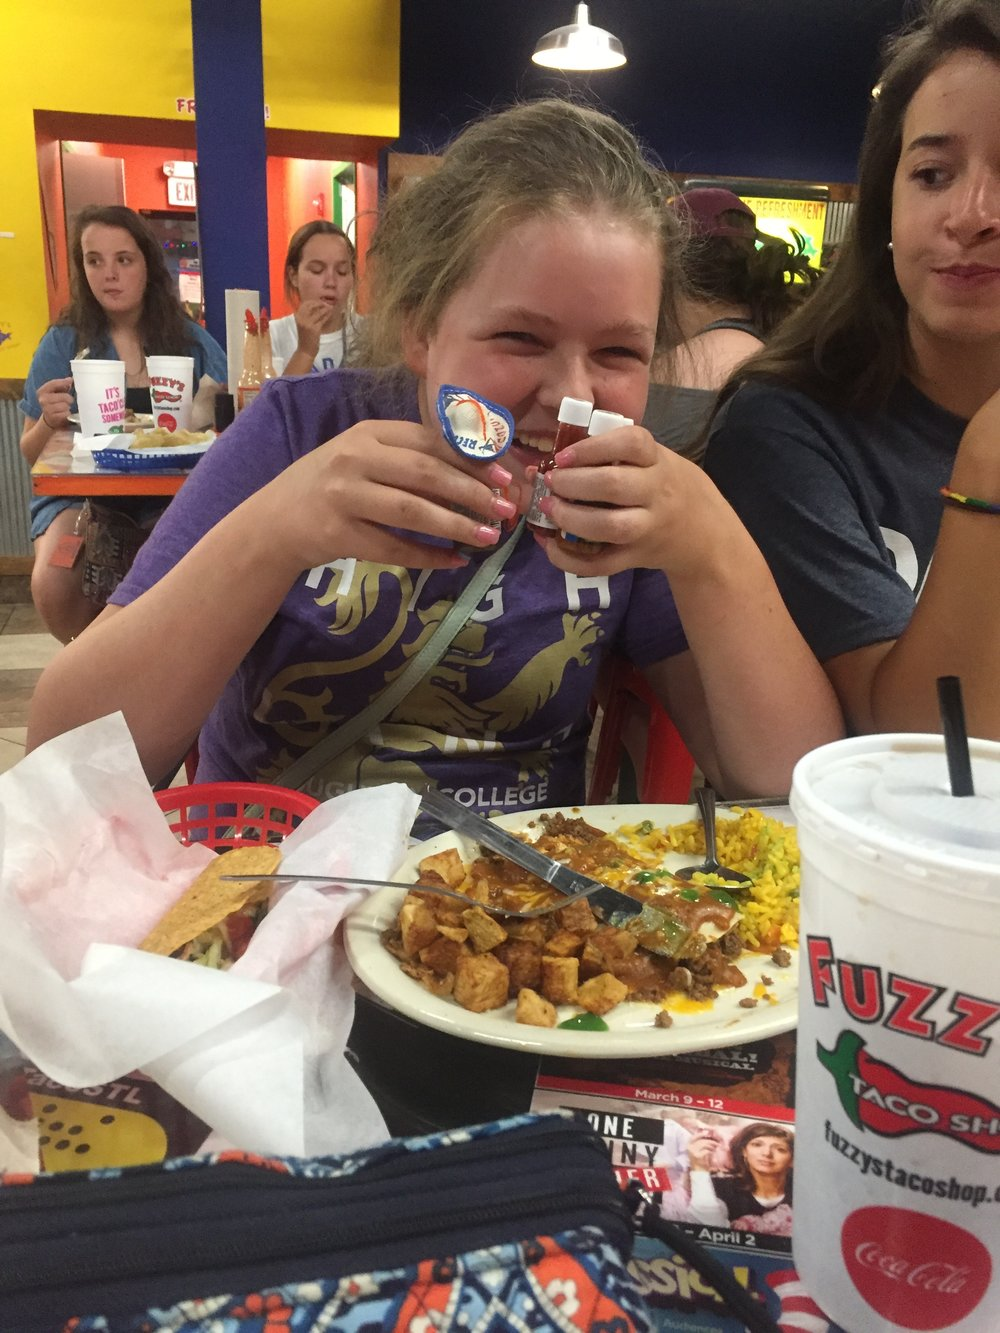 Abby at Fuzzy's with her hot sauces